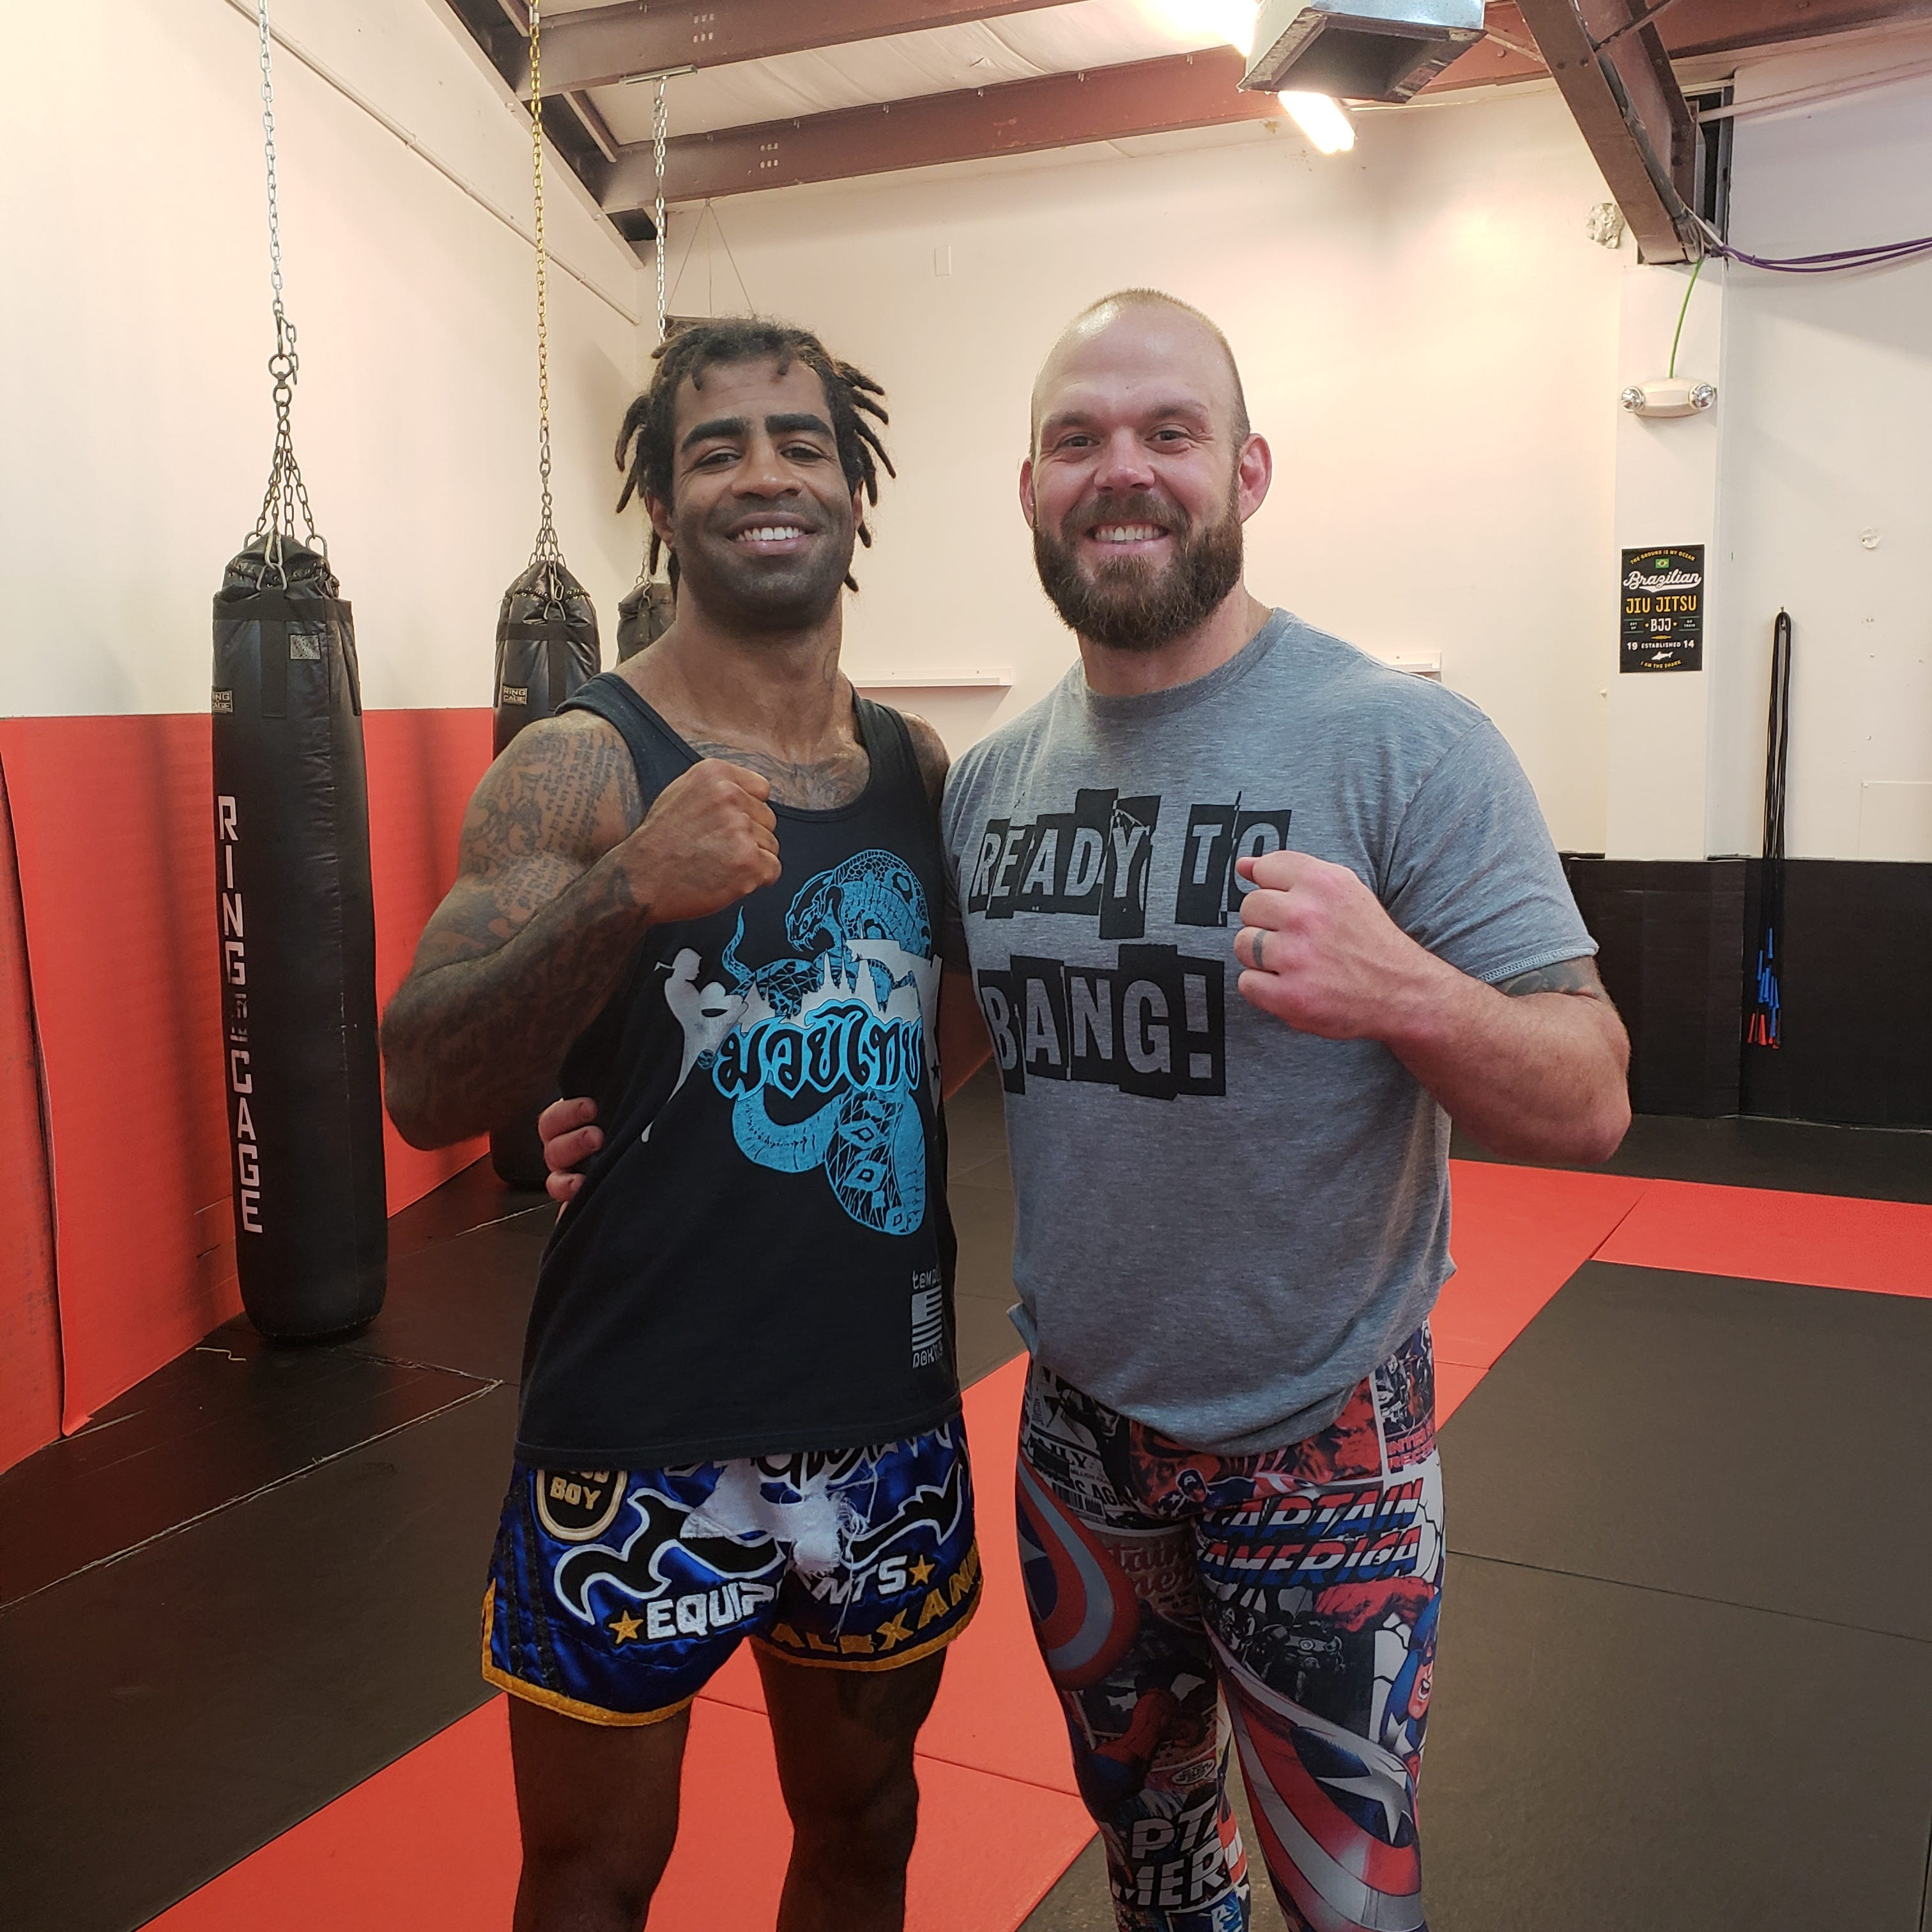 Naples professional MMA fighter Cosmo Alexandre defeats former UFC fighter Sage Northcutt